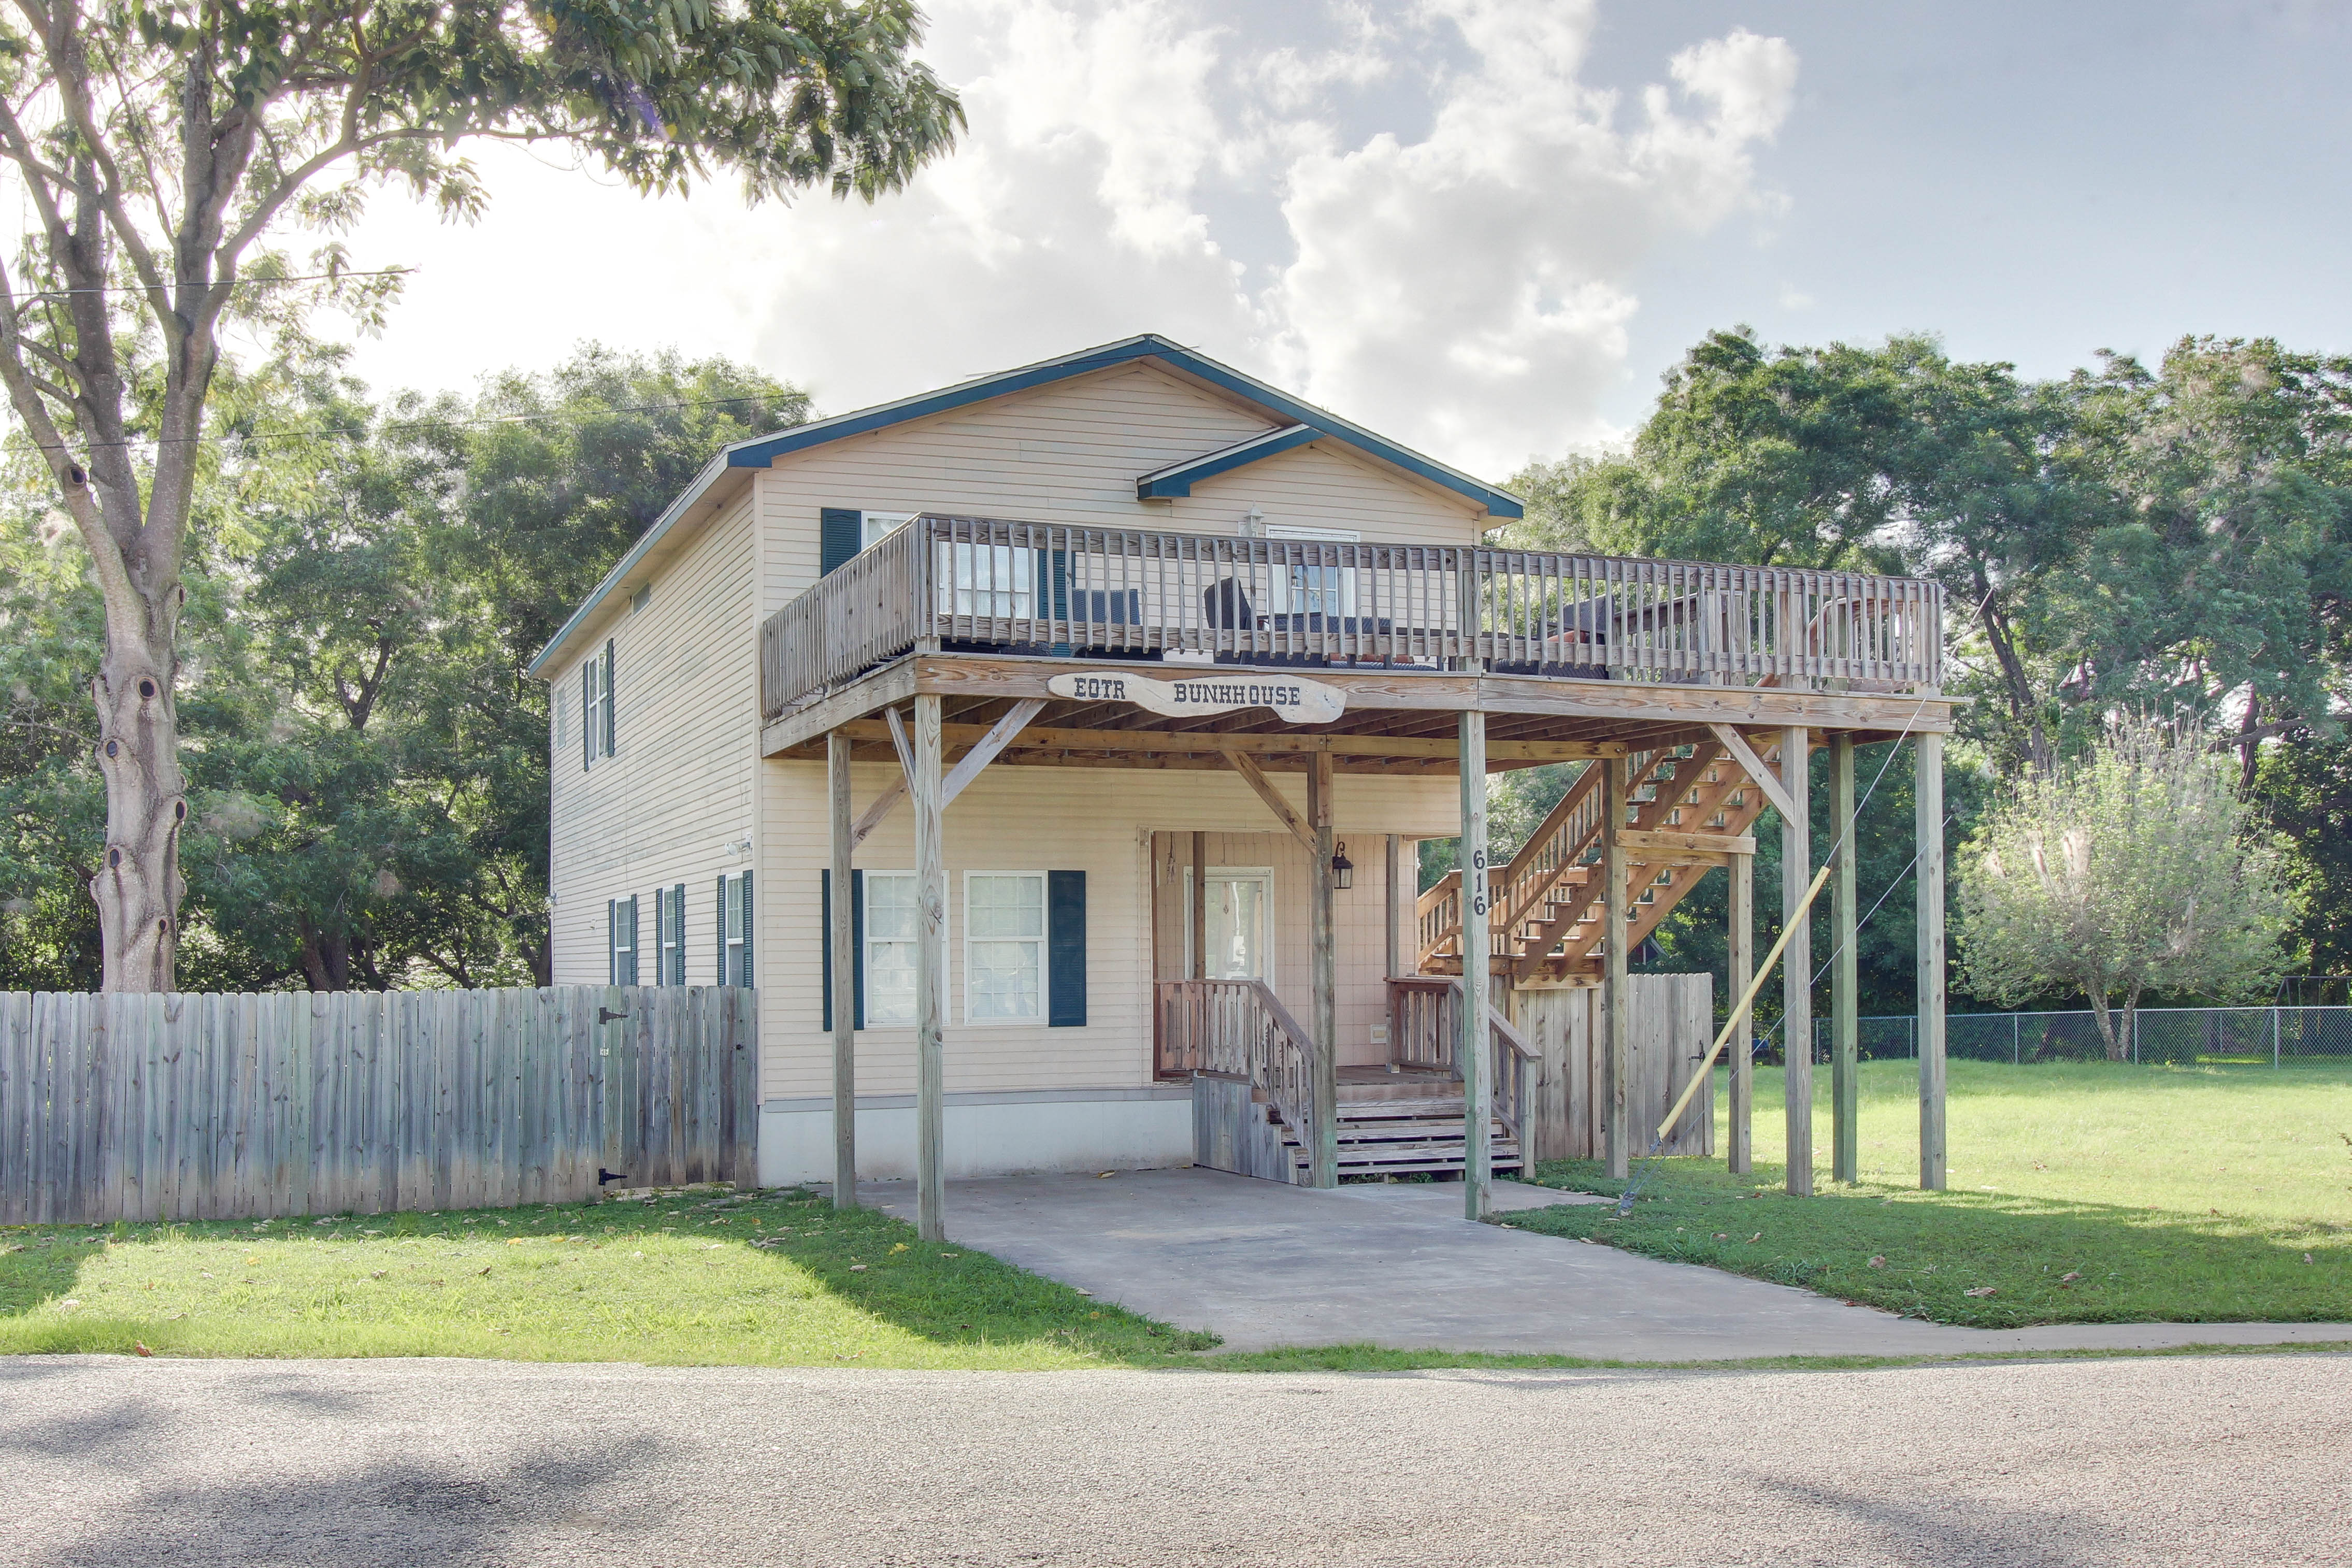 new cabin pics real lake canyon texas view oak at the cabins stock dam shores of picture best from tx rentals braunfels estate